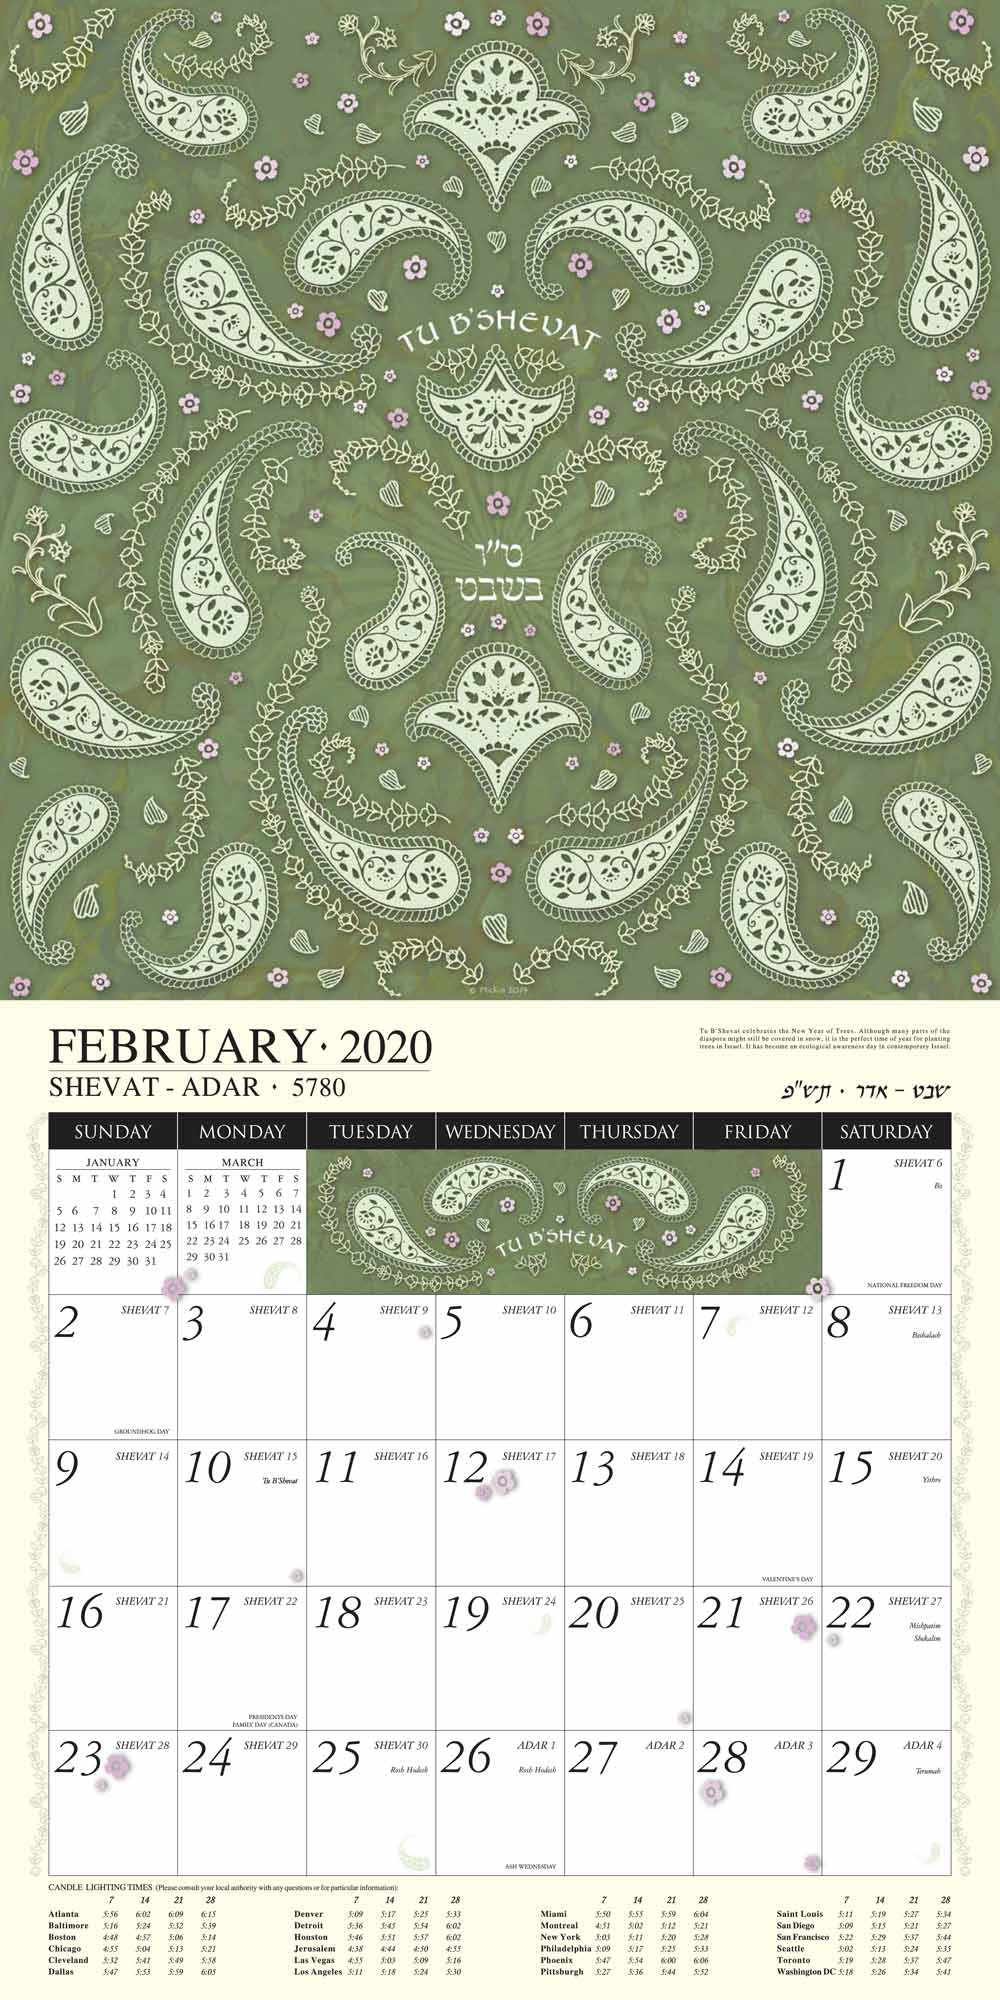 February 19 2020 Jewish Calendar Jewish Art Calendar 2020 by Mickie   Caspi Cards & Art